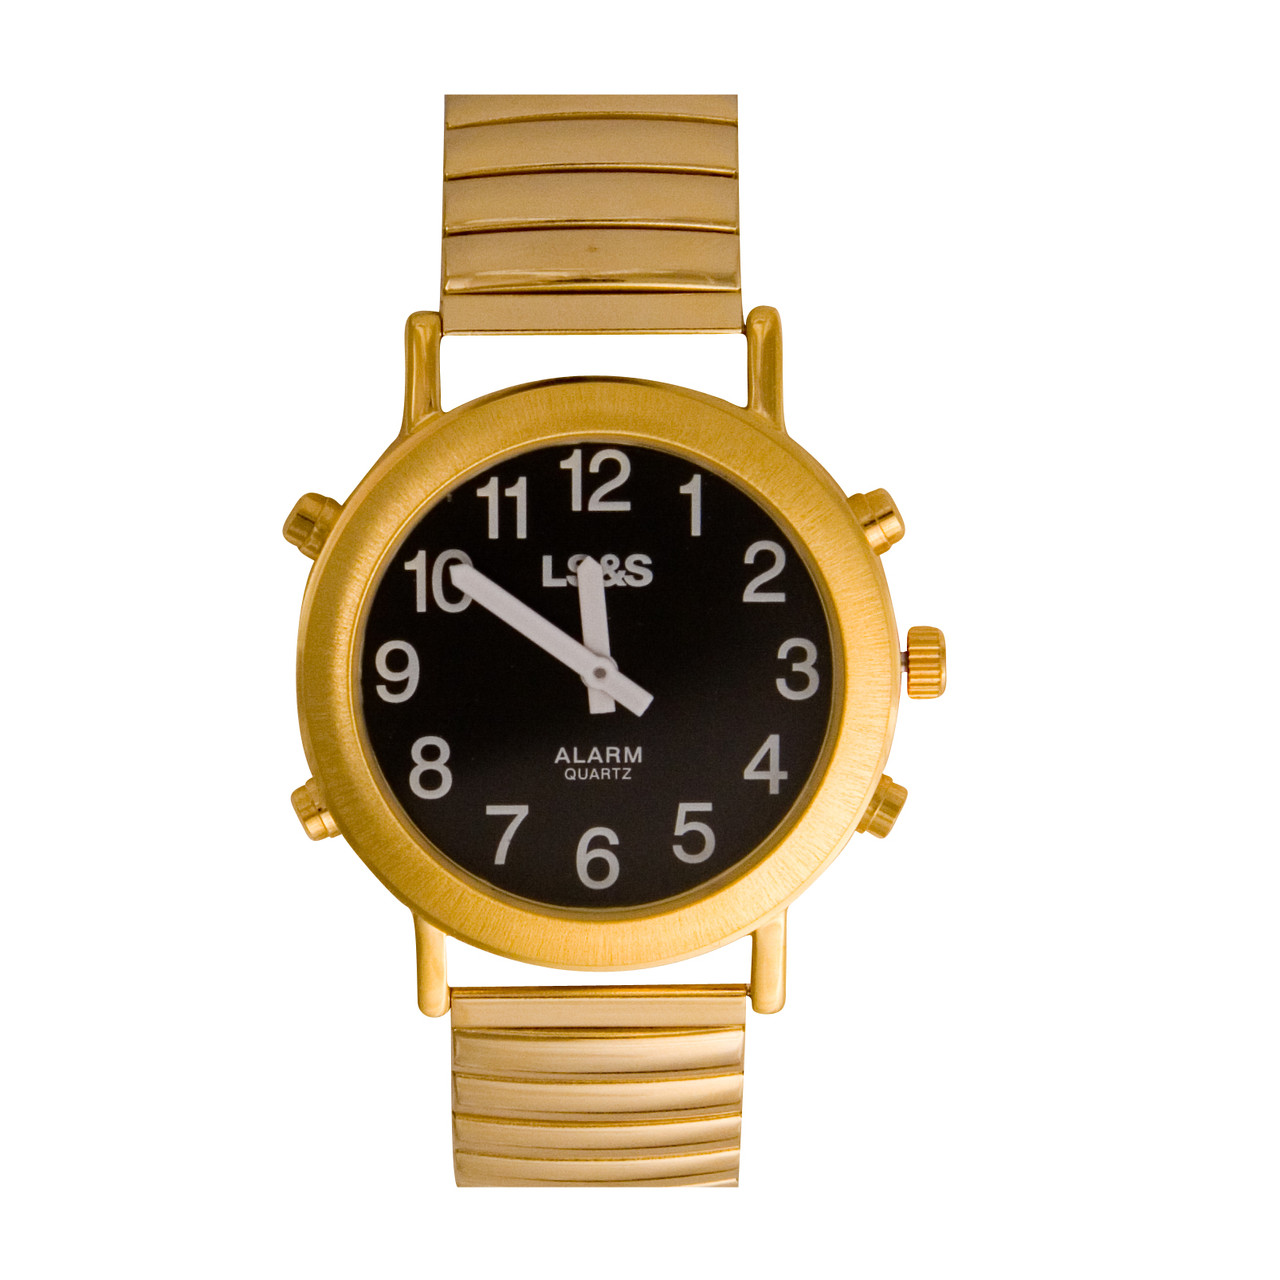 Talking Watch Black face, gold tone, expansion band